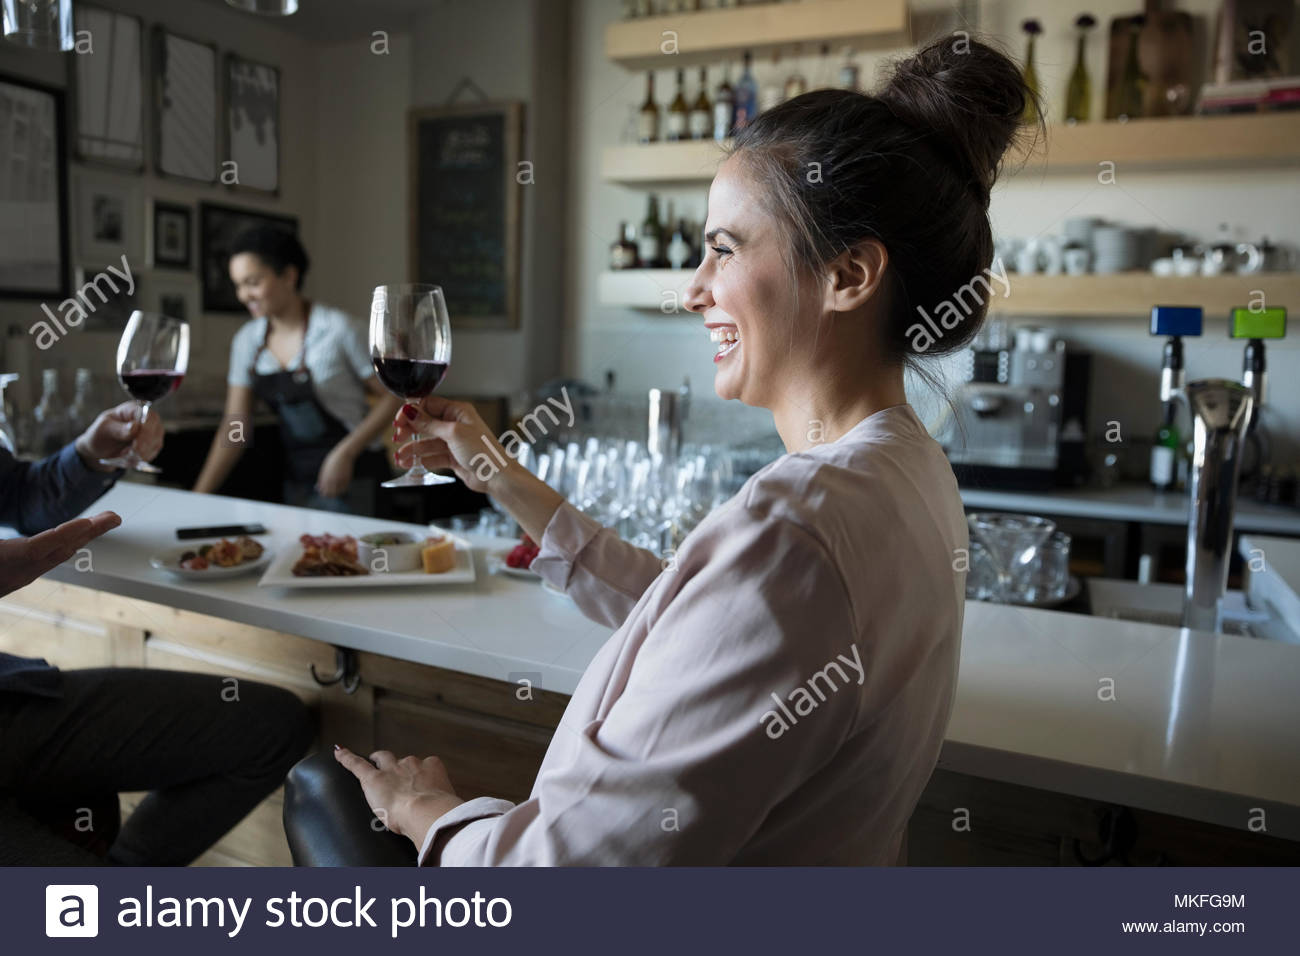 Laughing, carefree young woman drinking red wine in bar - Stock Image